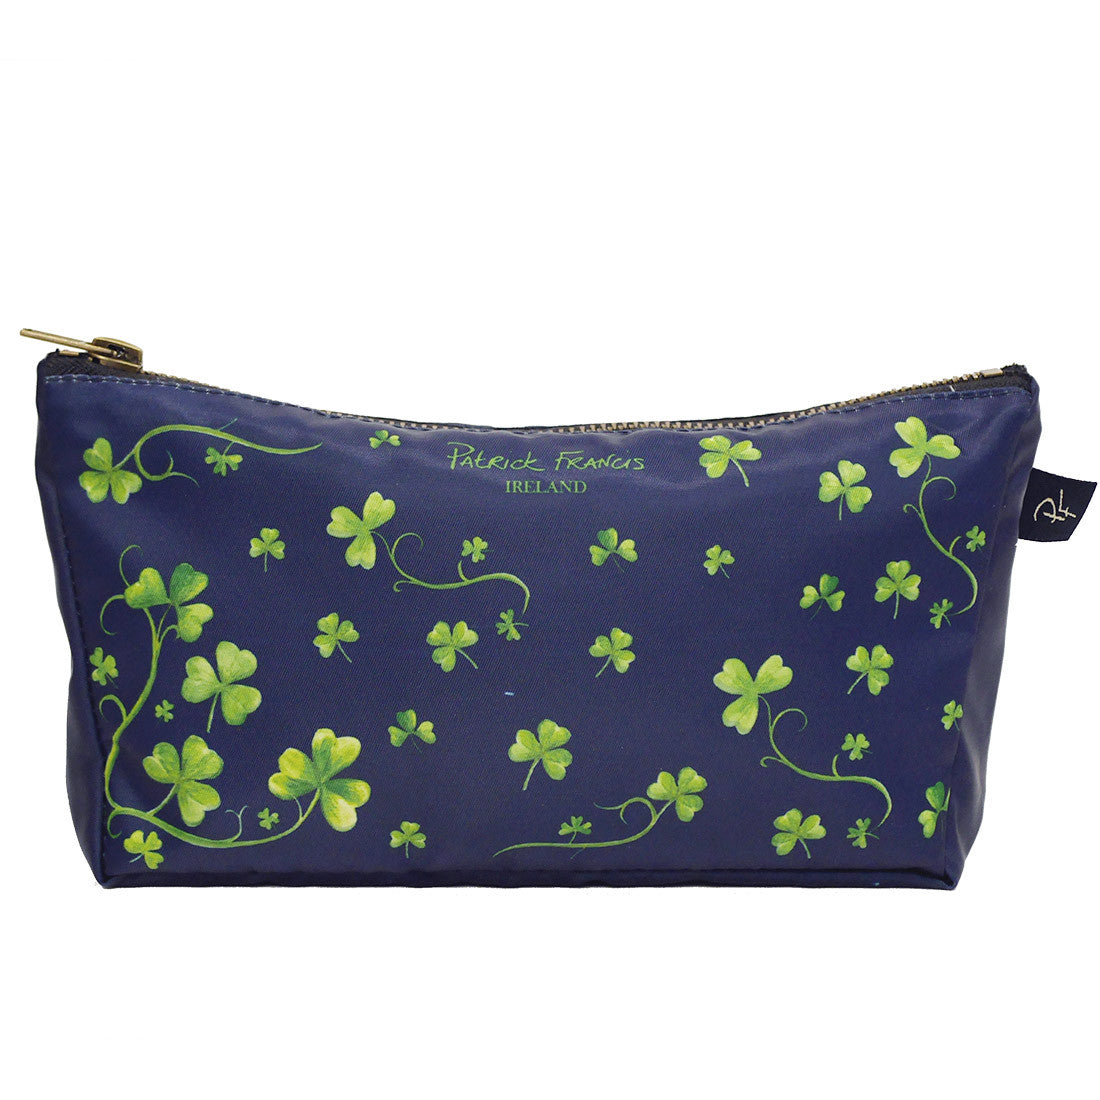 Navy coloured Green Shamrock Cosmetic Bag Patrick Francis Collection